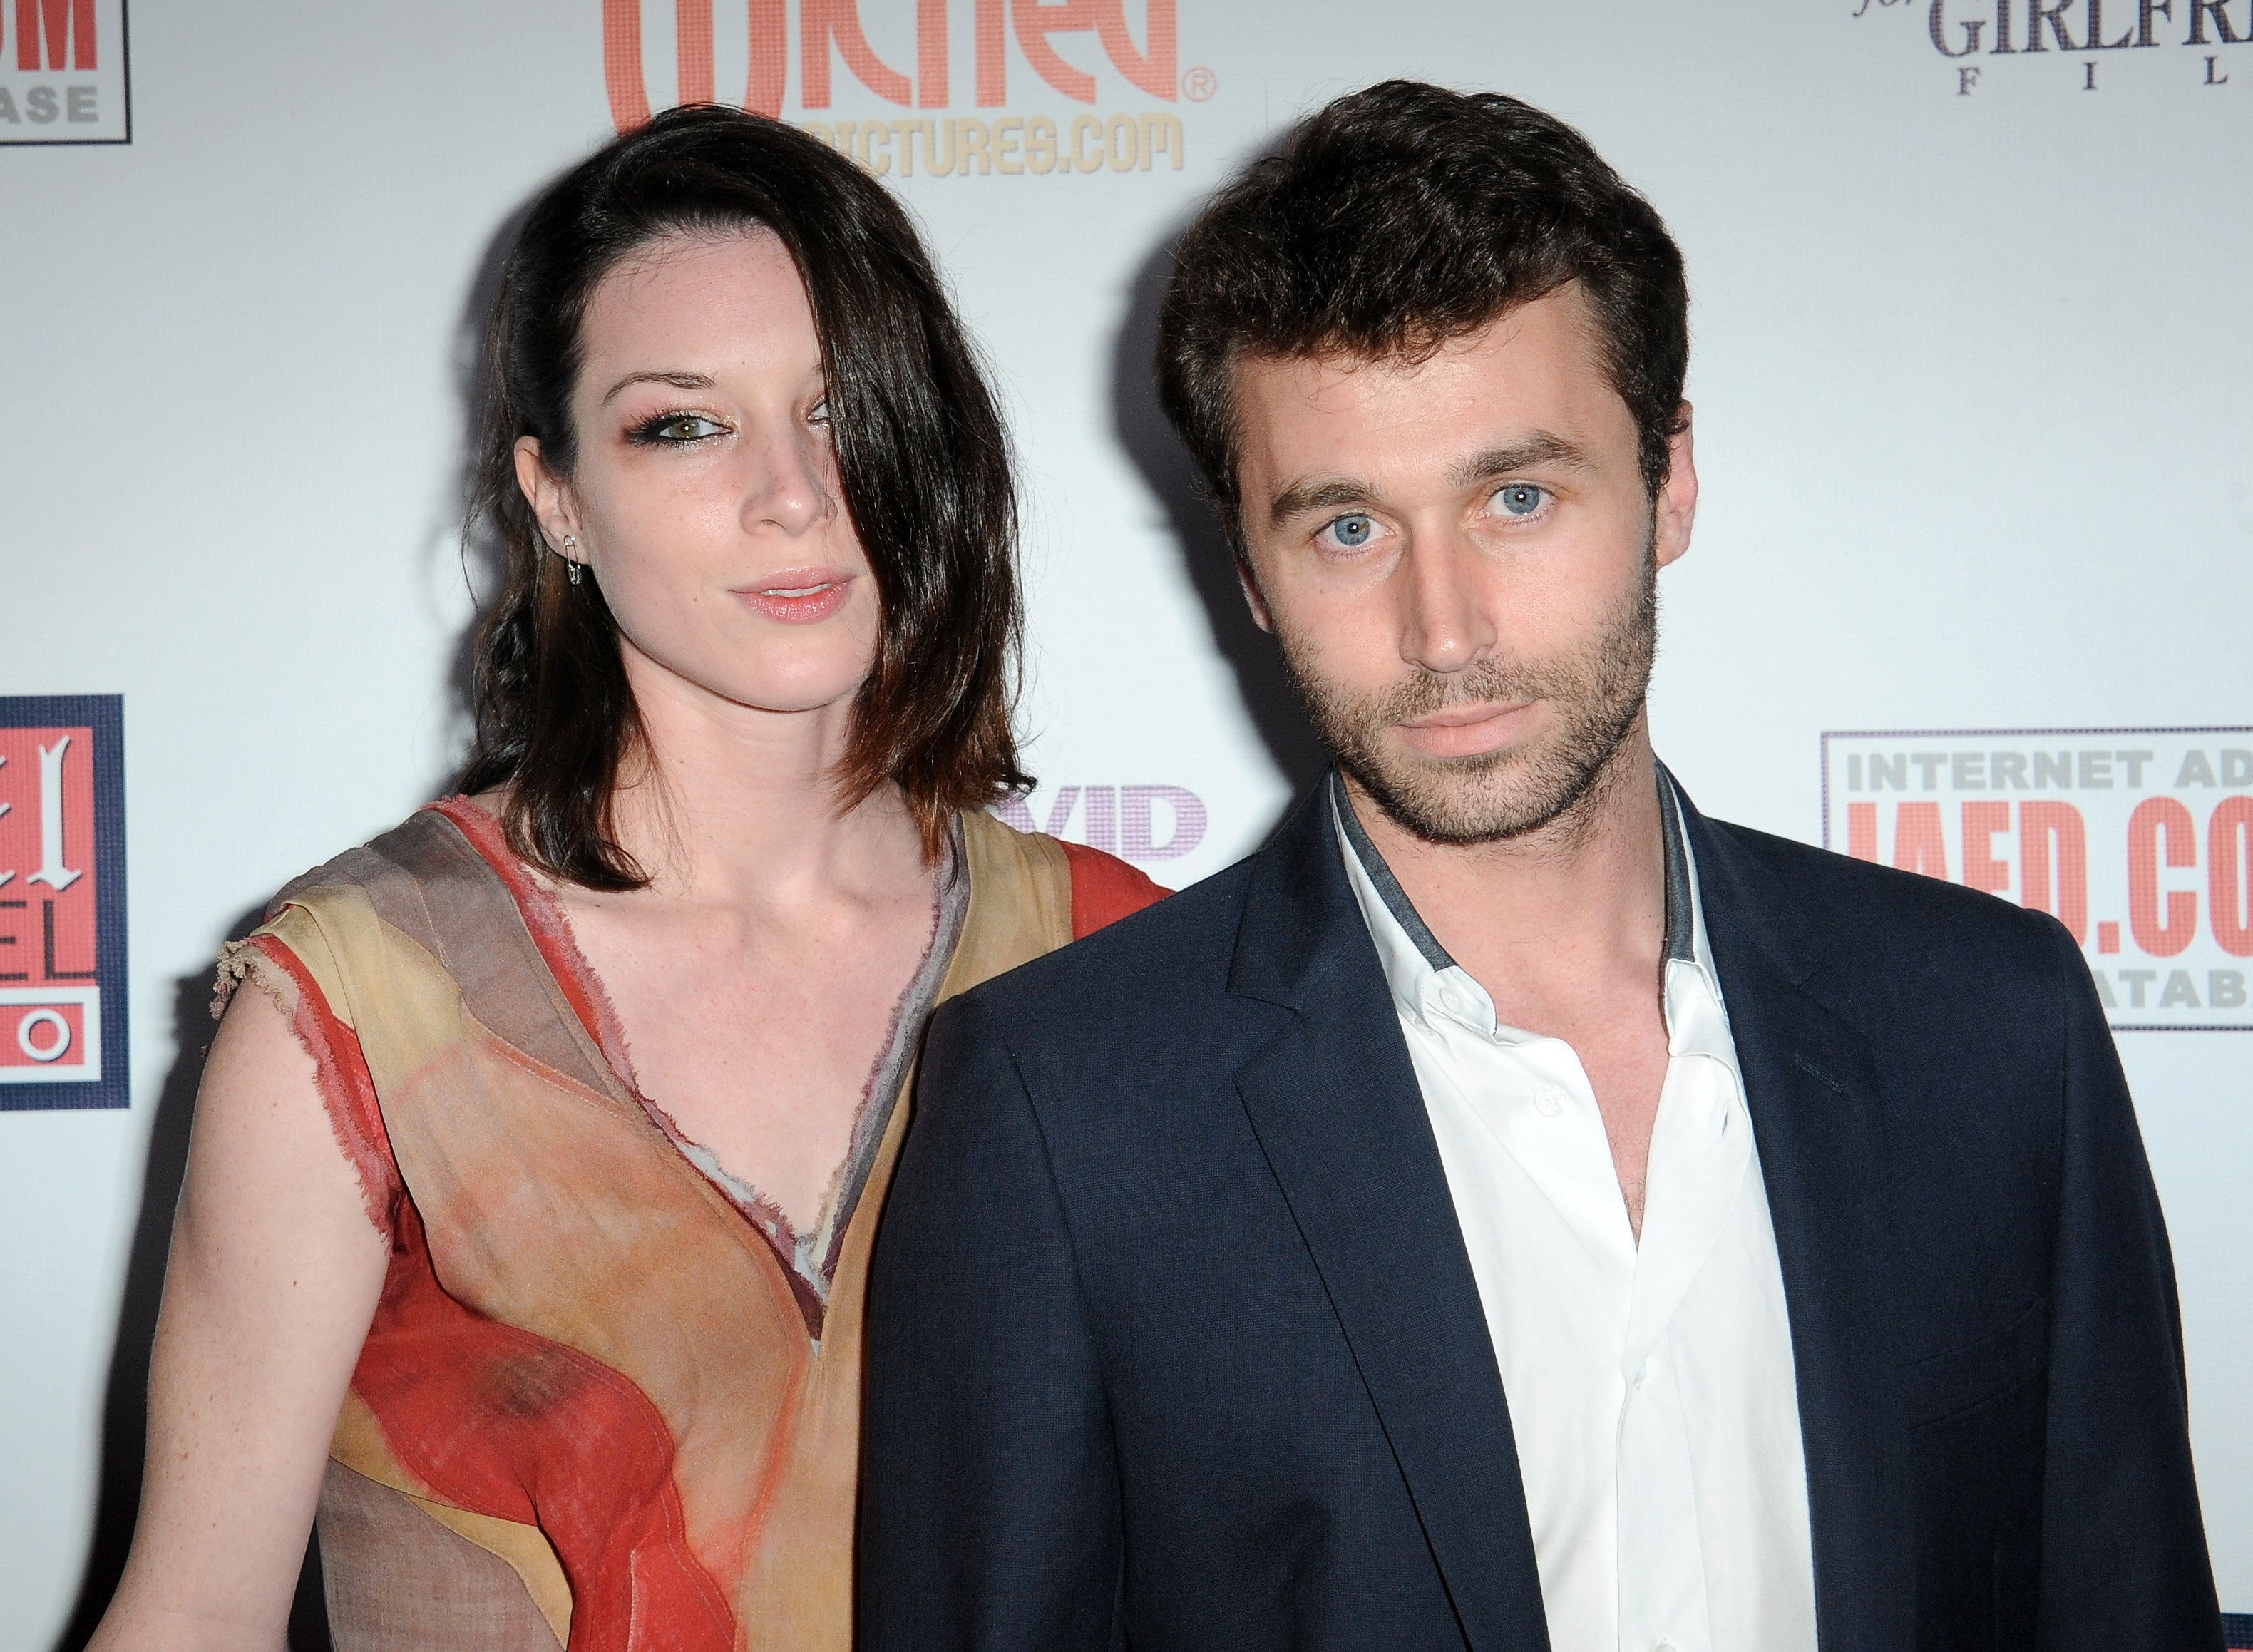 this actually happened James deen